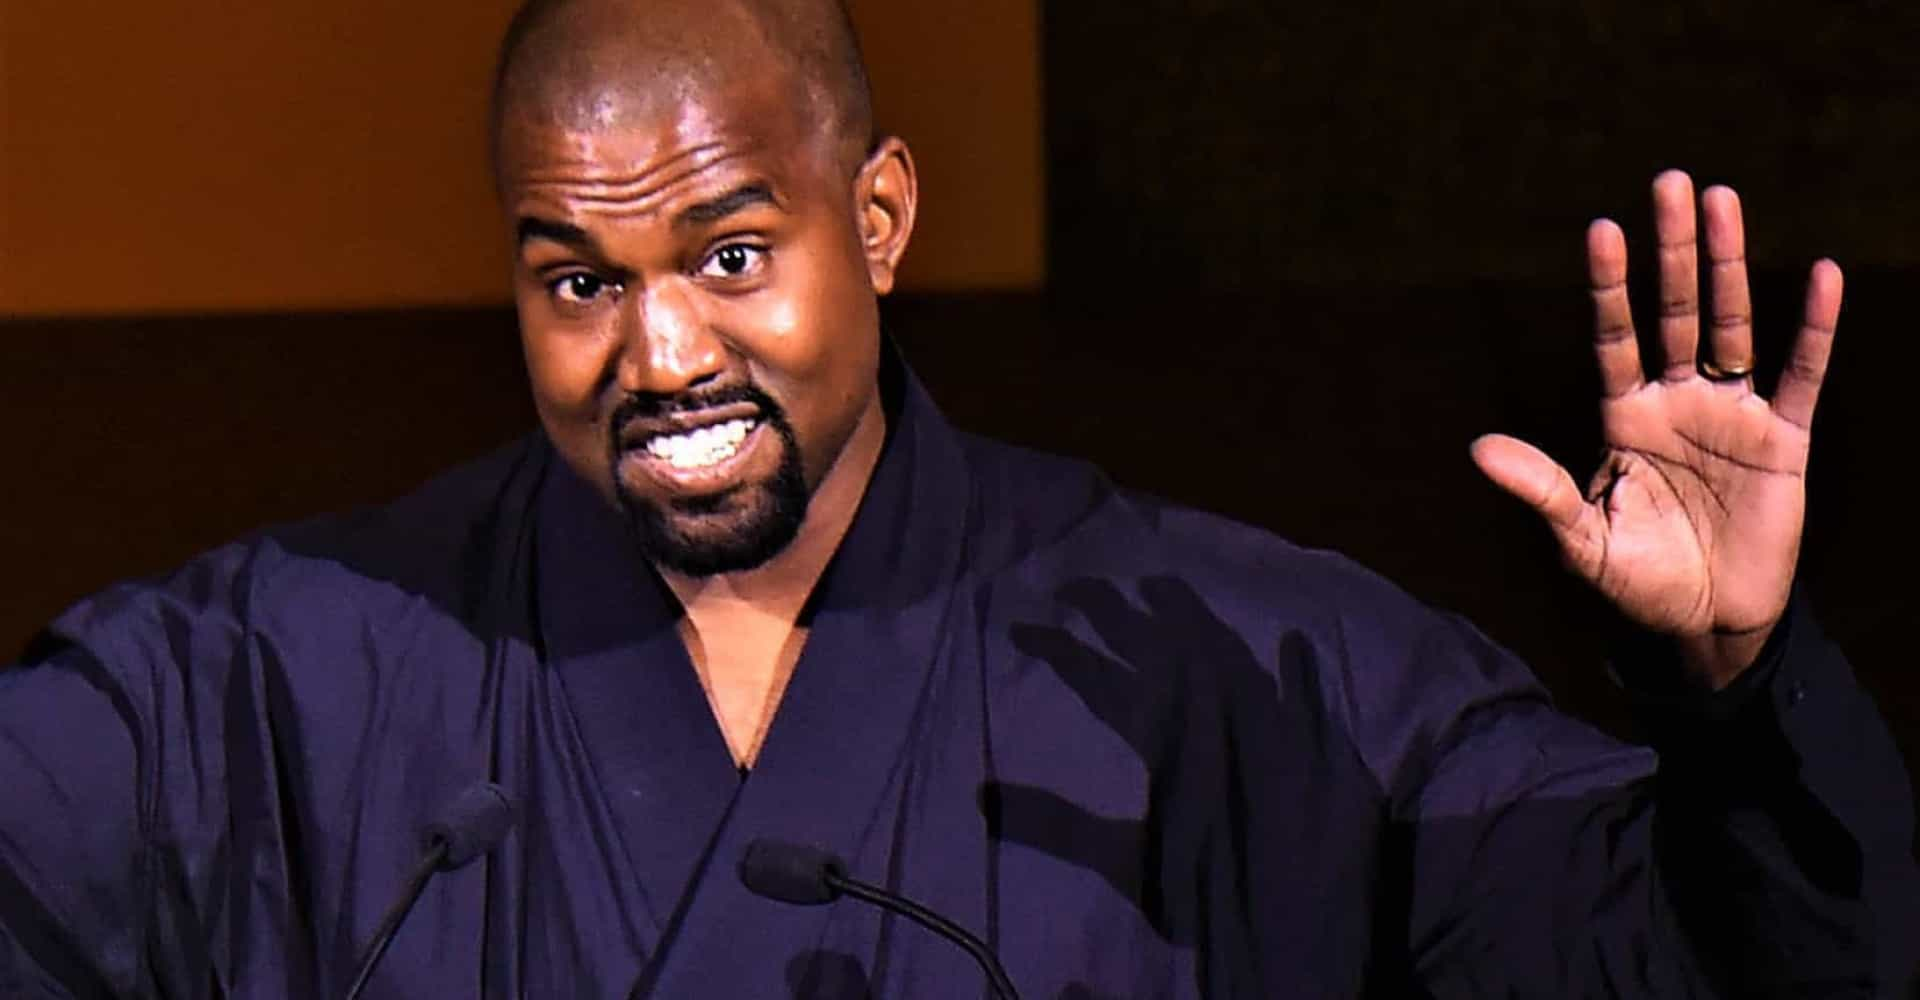 Kanye West's church: what's it about and who's involved